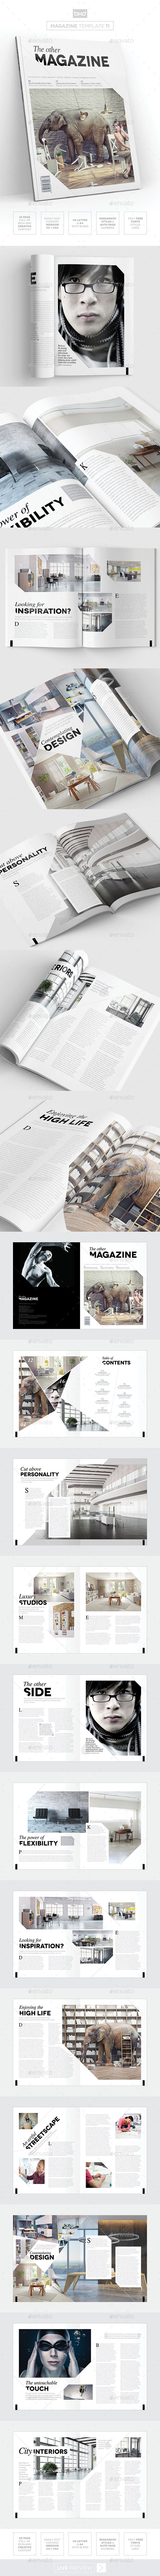 Magazine Template - InDesign 24 Page Layout V11 - Magazines Print Templates Download here : https://graphicriver.net/item/magazine-template-indesign-24-page-layout-v11/19672556?s_rank=14&ref=Al-fatih